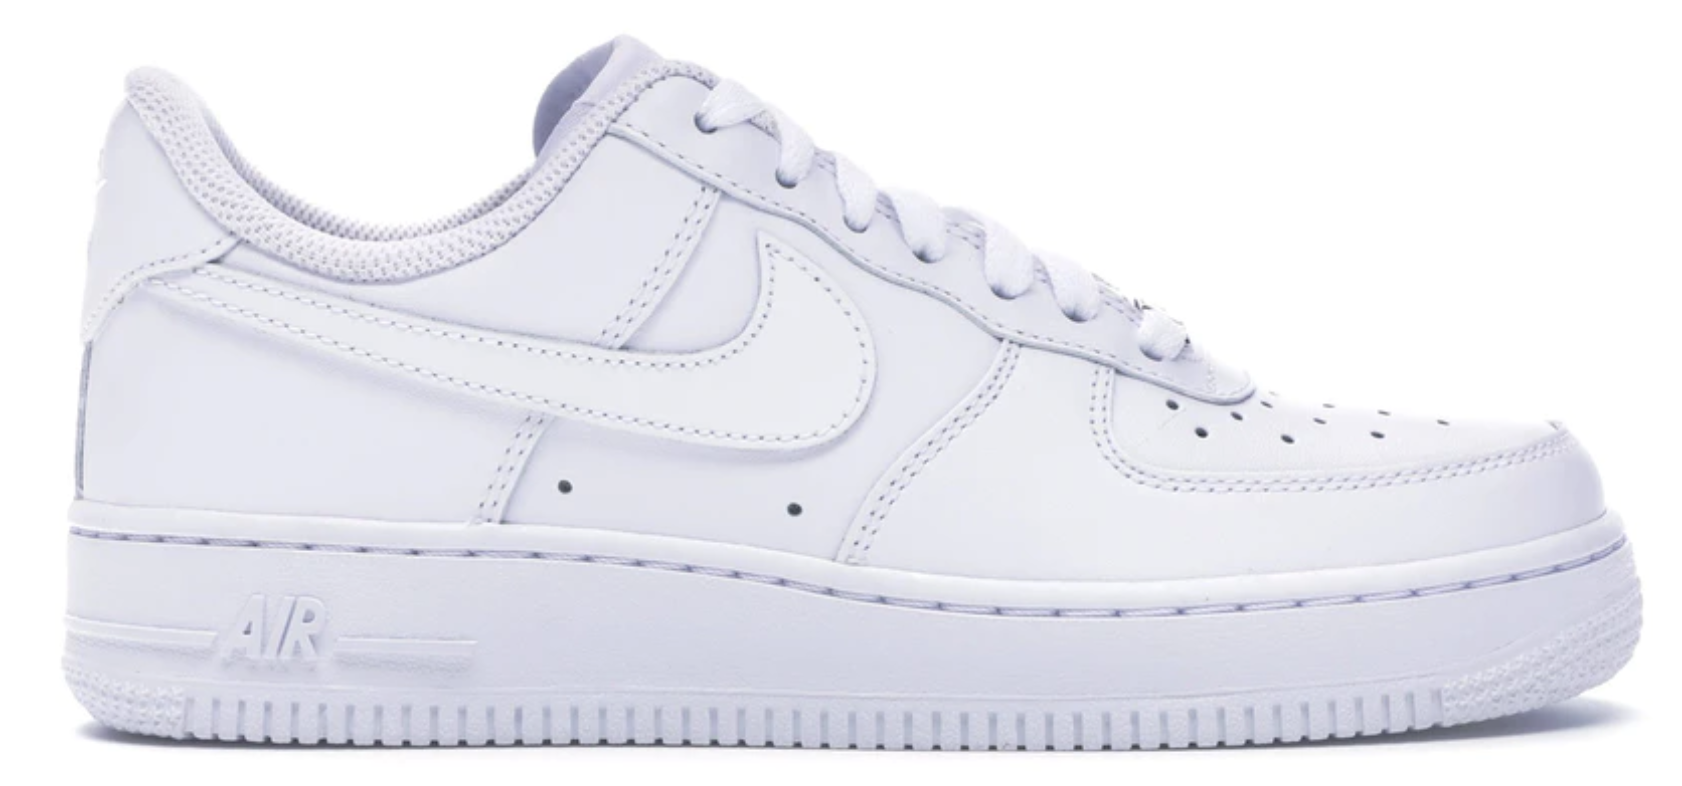 Les meilleures Sneakers Nike Femme - StockX News